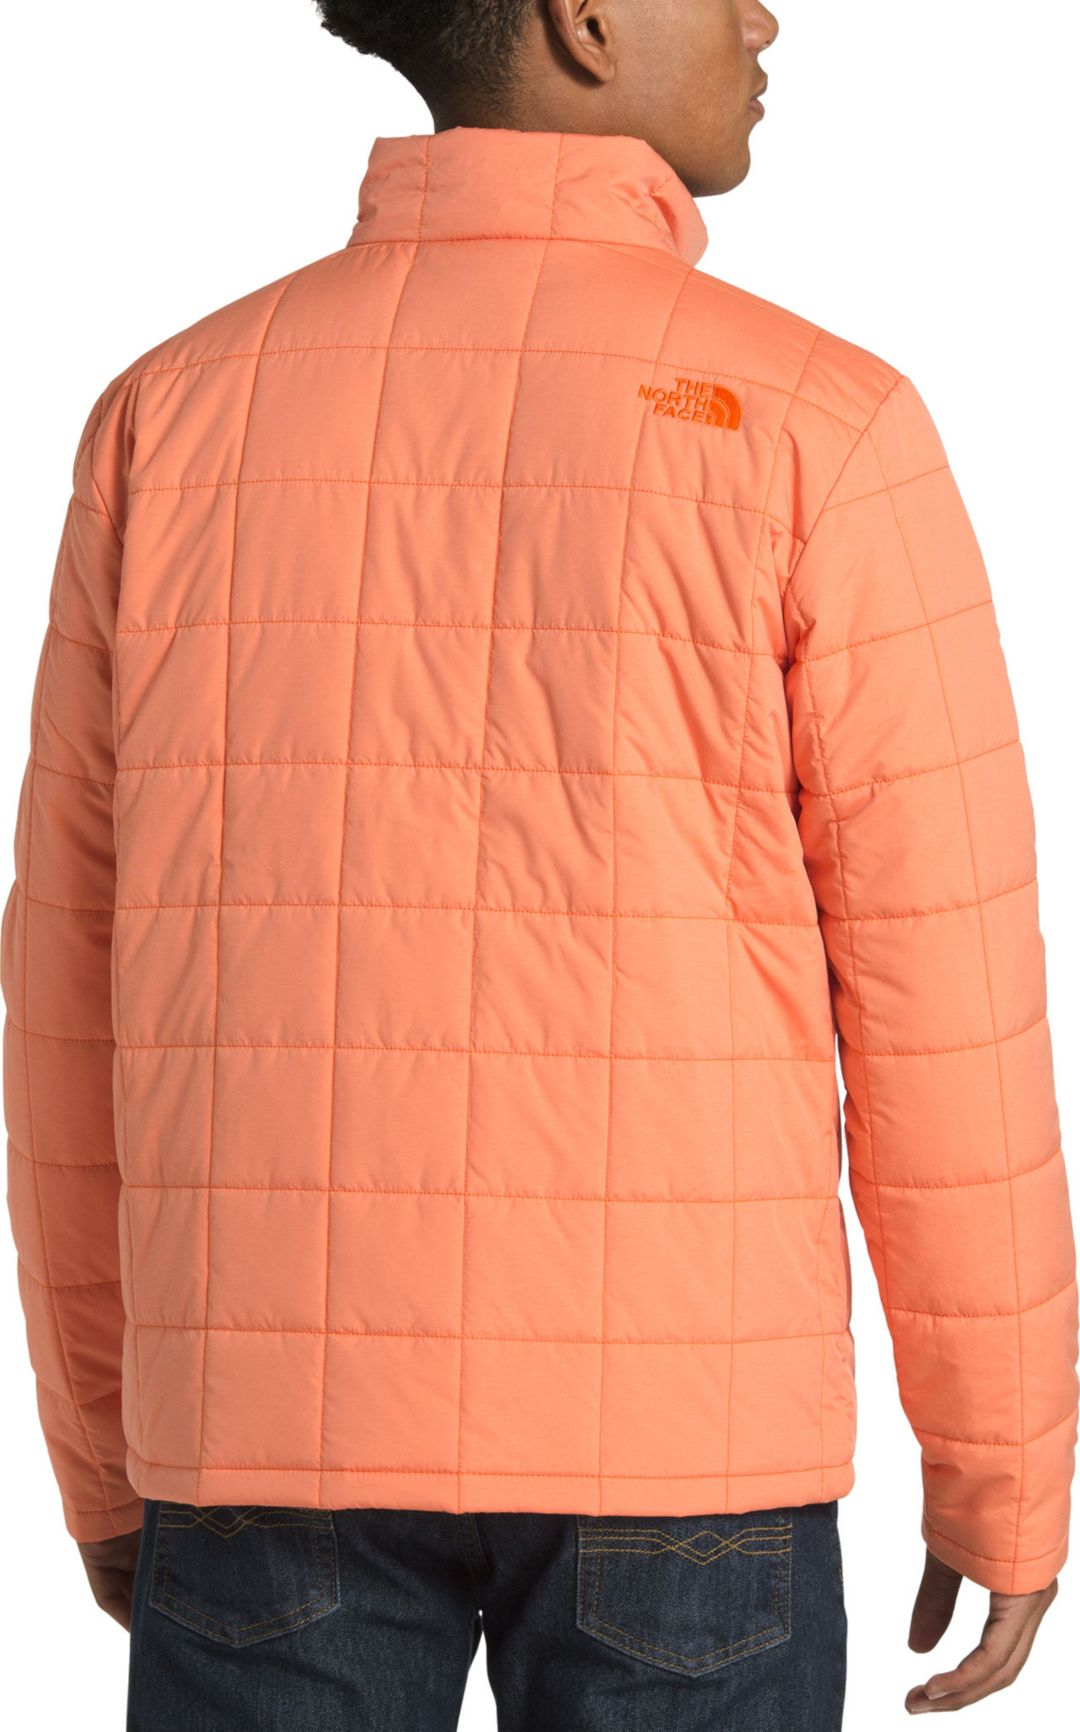 bc8e977fd23 The North Face Men's Harway Insulated Jacket